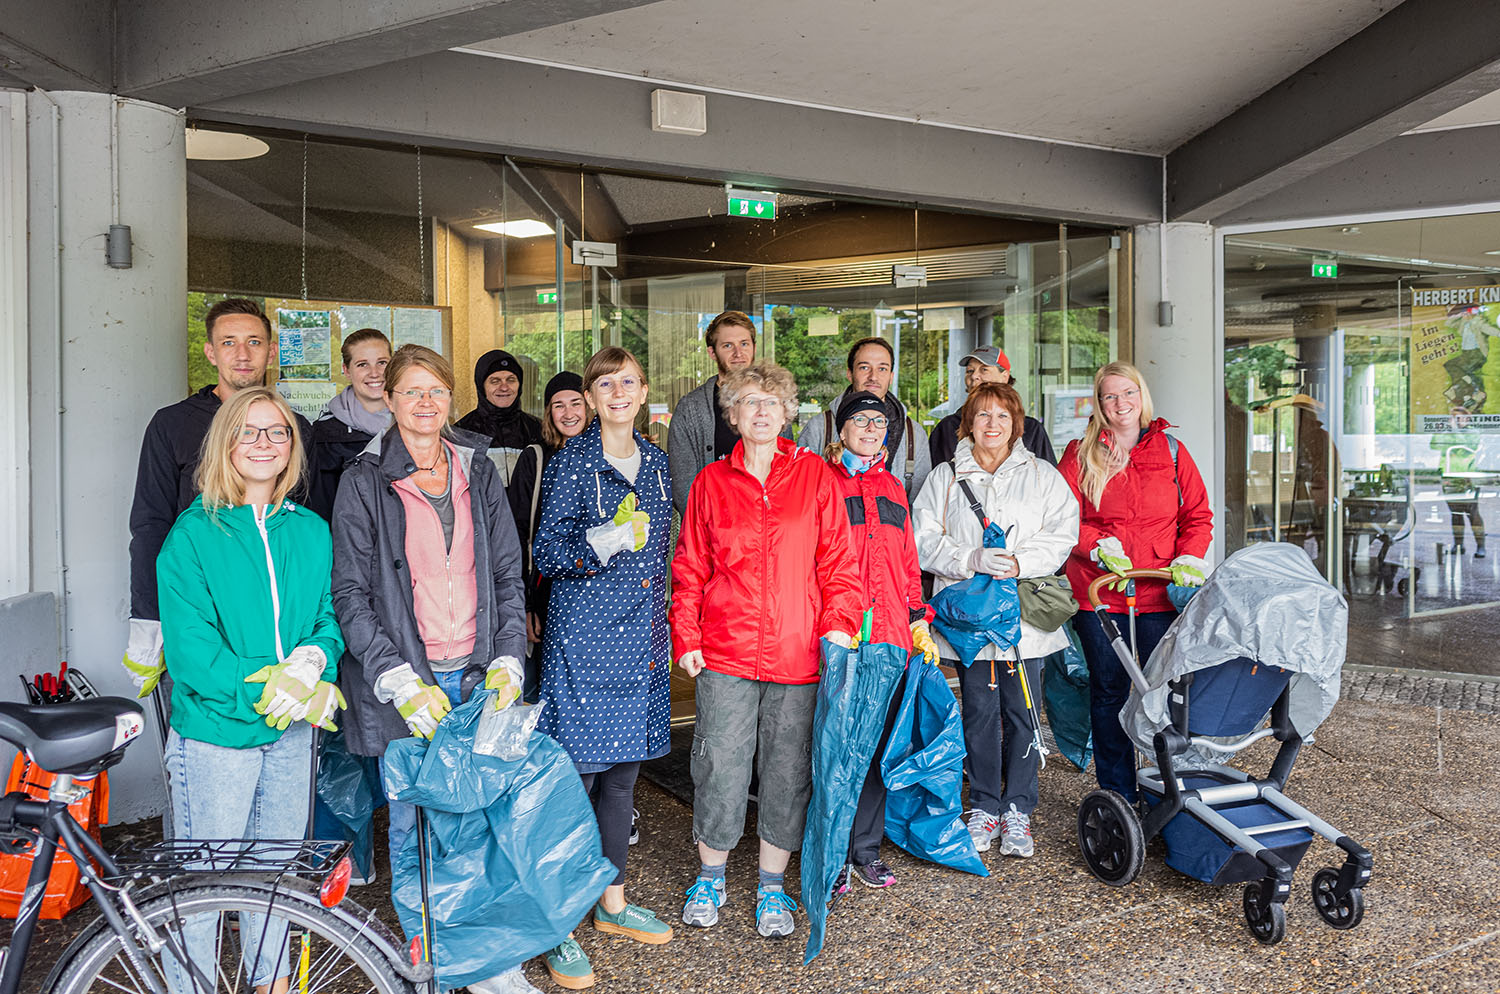 Nachlese – 2. CleanUp Ratingen am 18. August 2019 in der Innenstadt